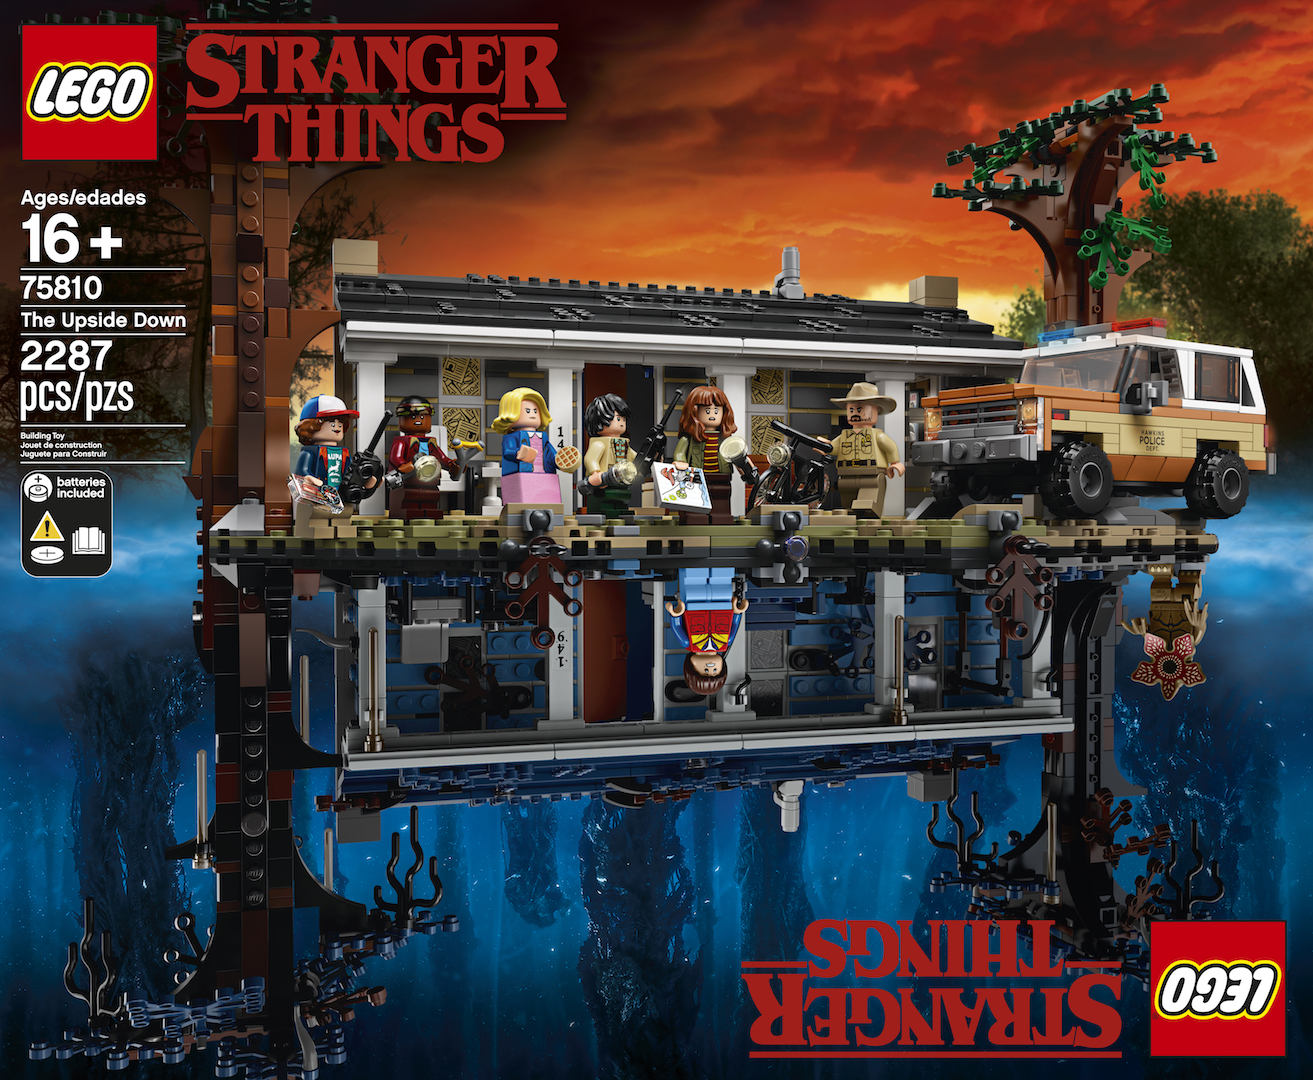 First Look: LEGO Stranger Things: The Upside Down set